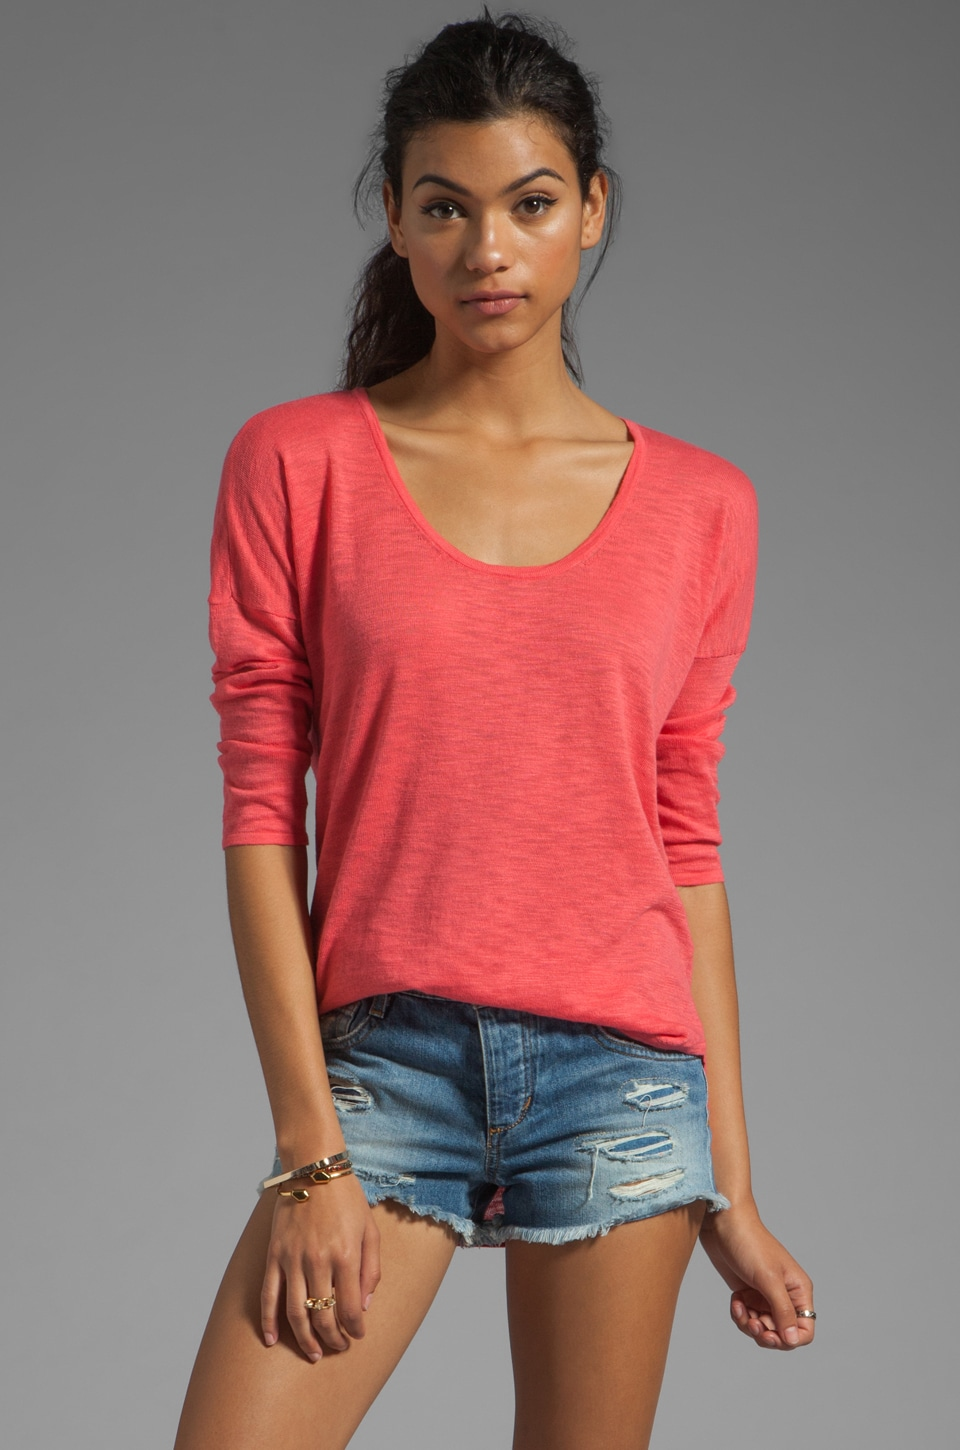 C&C California Dolman Tail Shirt in Gumball Pink